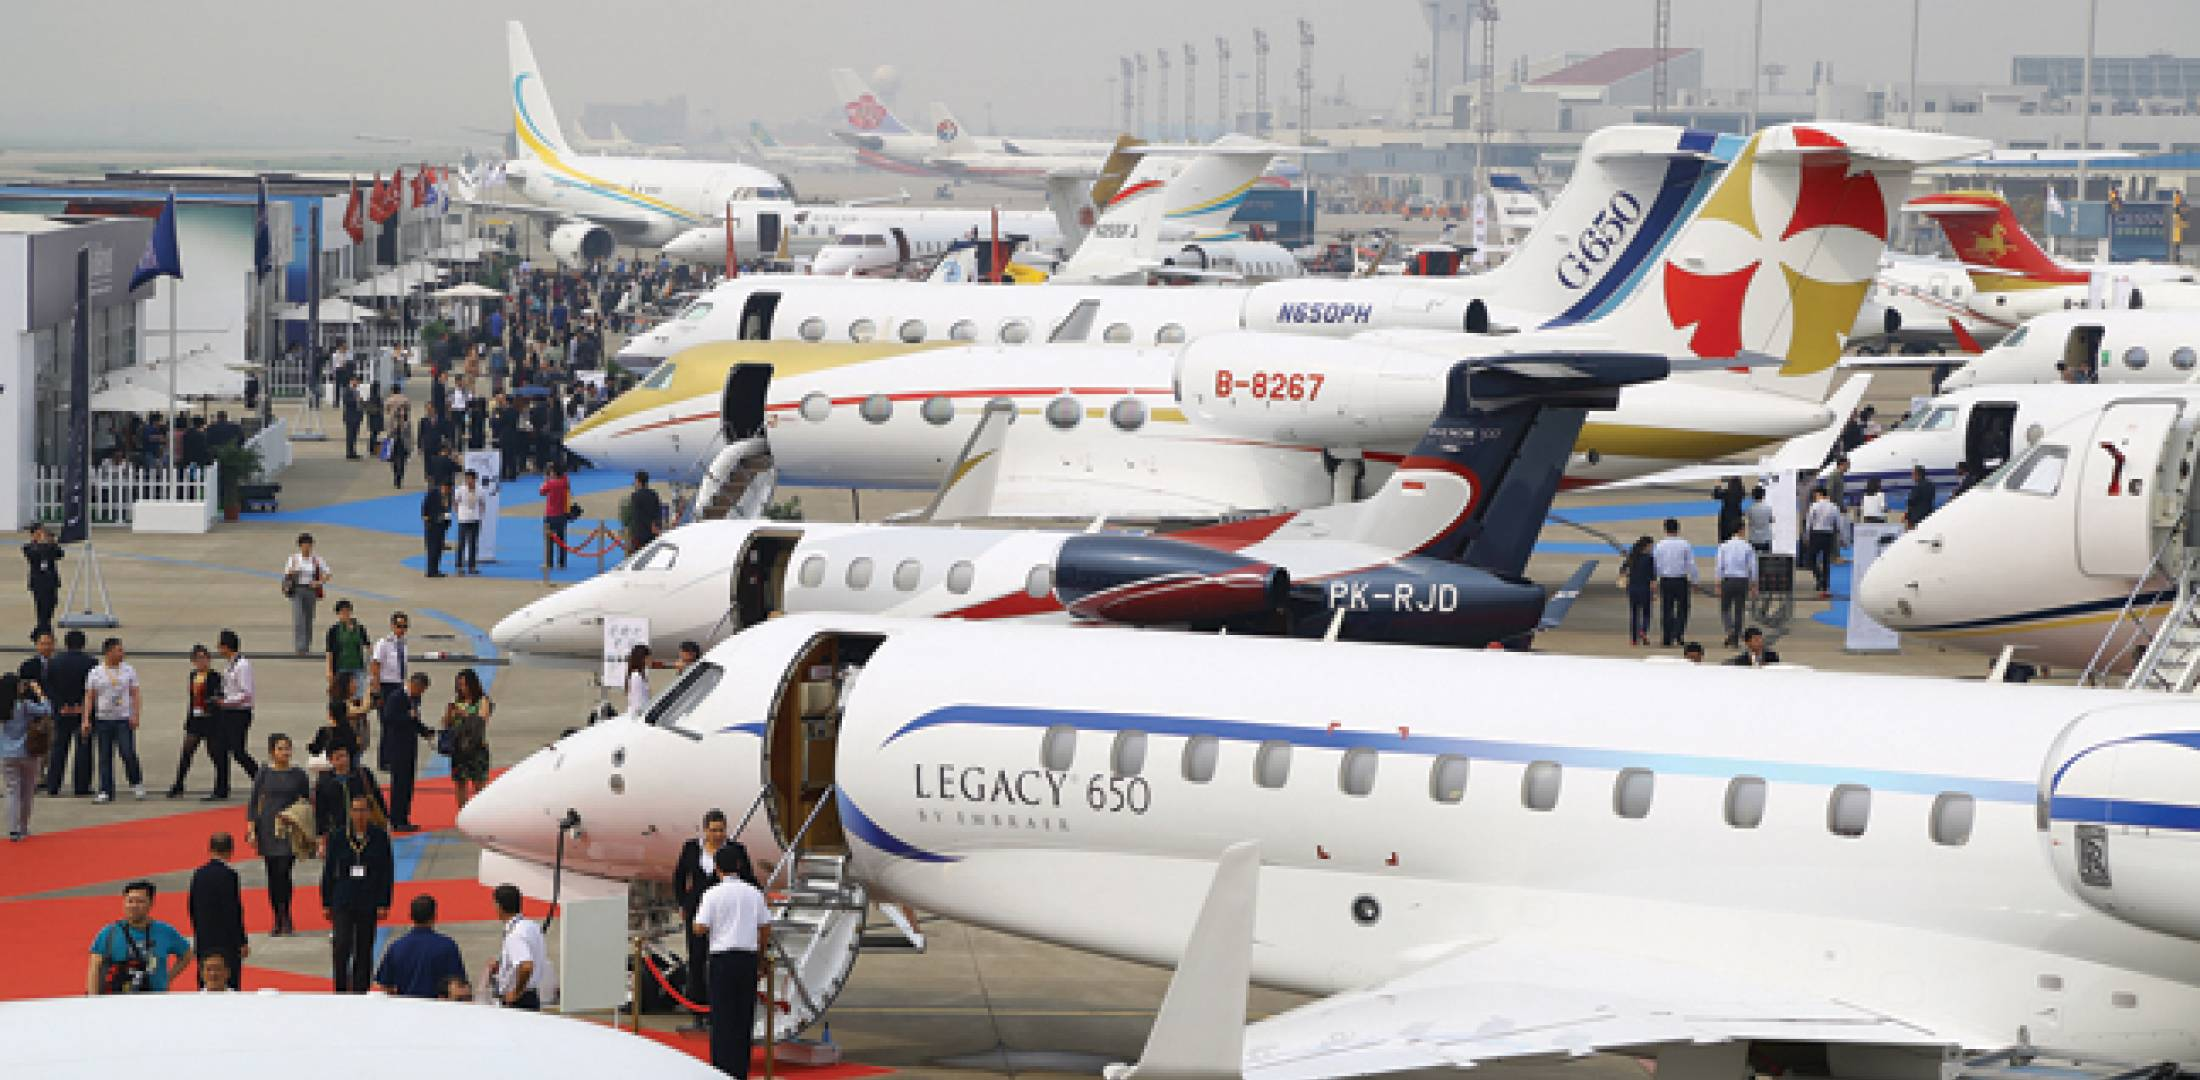 The Shanghai Hawker Pacific Business Aviation Service Centre at Hongqiao hosted 34 aircraft, seven more than at last year's event.